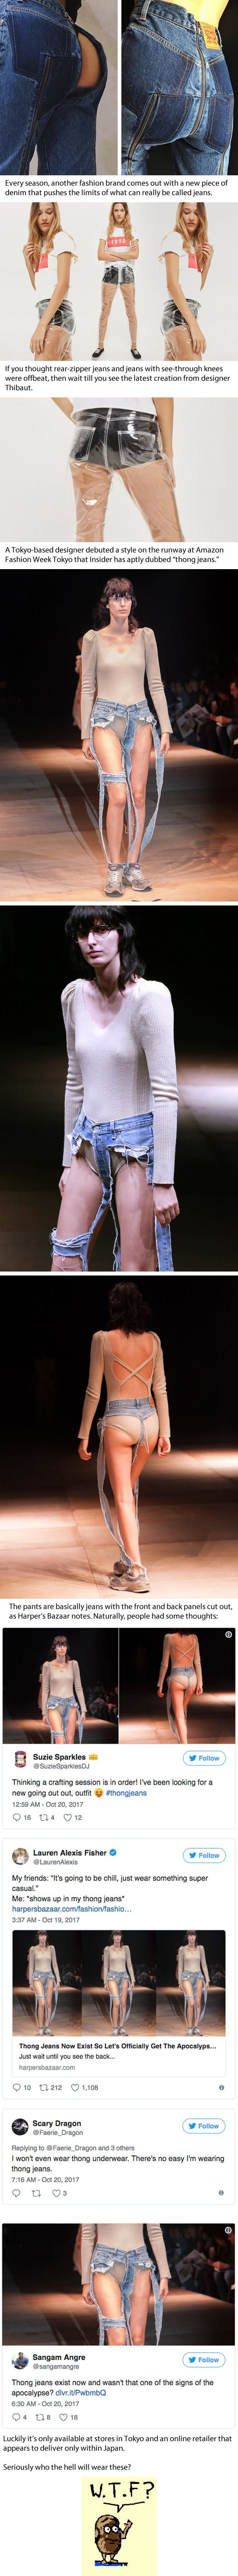 High-Fashion 'Thong Jeans' Are The Latest Trend But It Is Quite Confusing